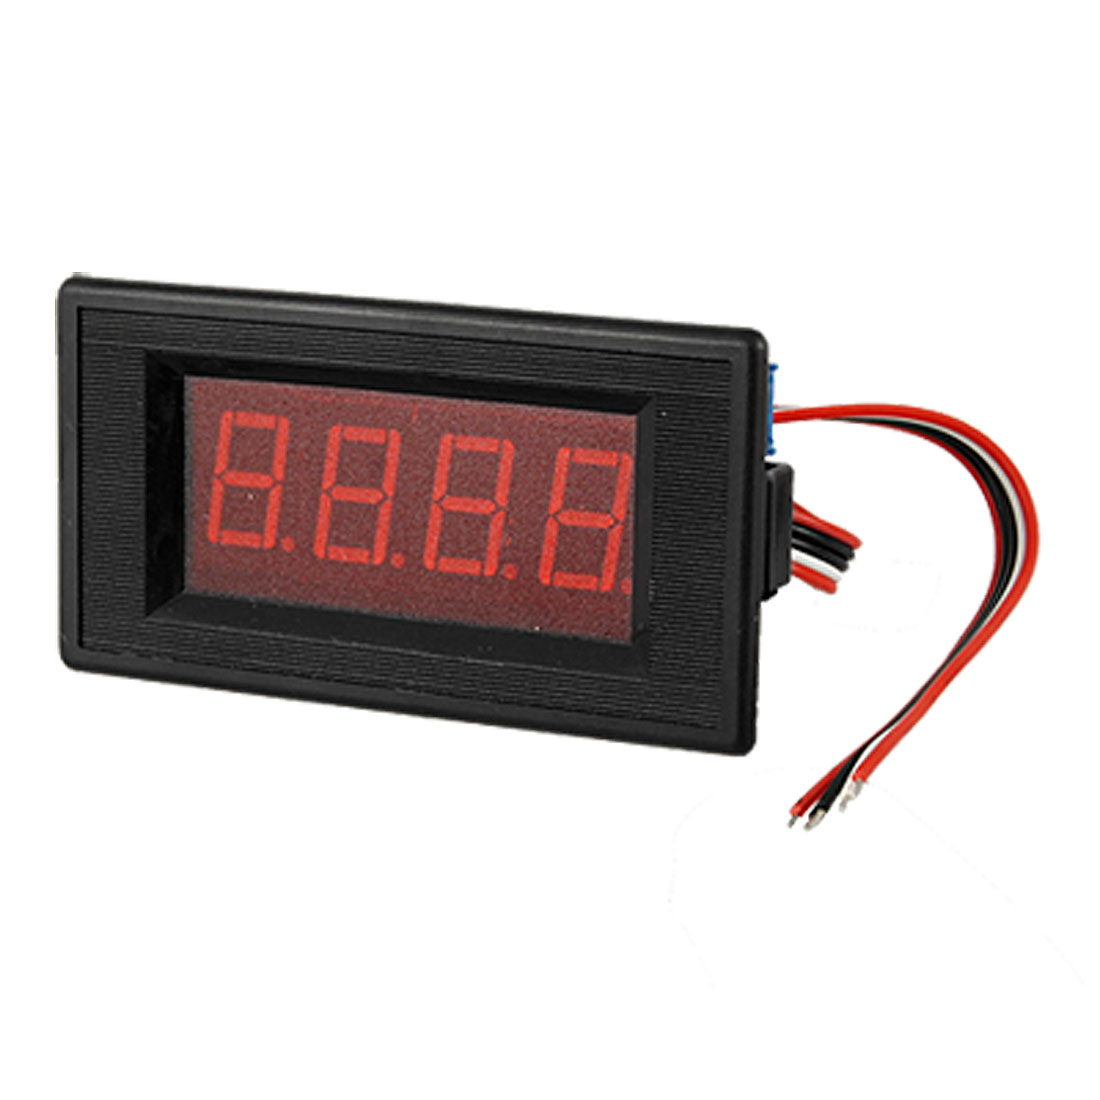 DC 200A 75MV Red 3 1/2 LED Display Ampmeter Panel